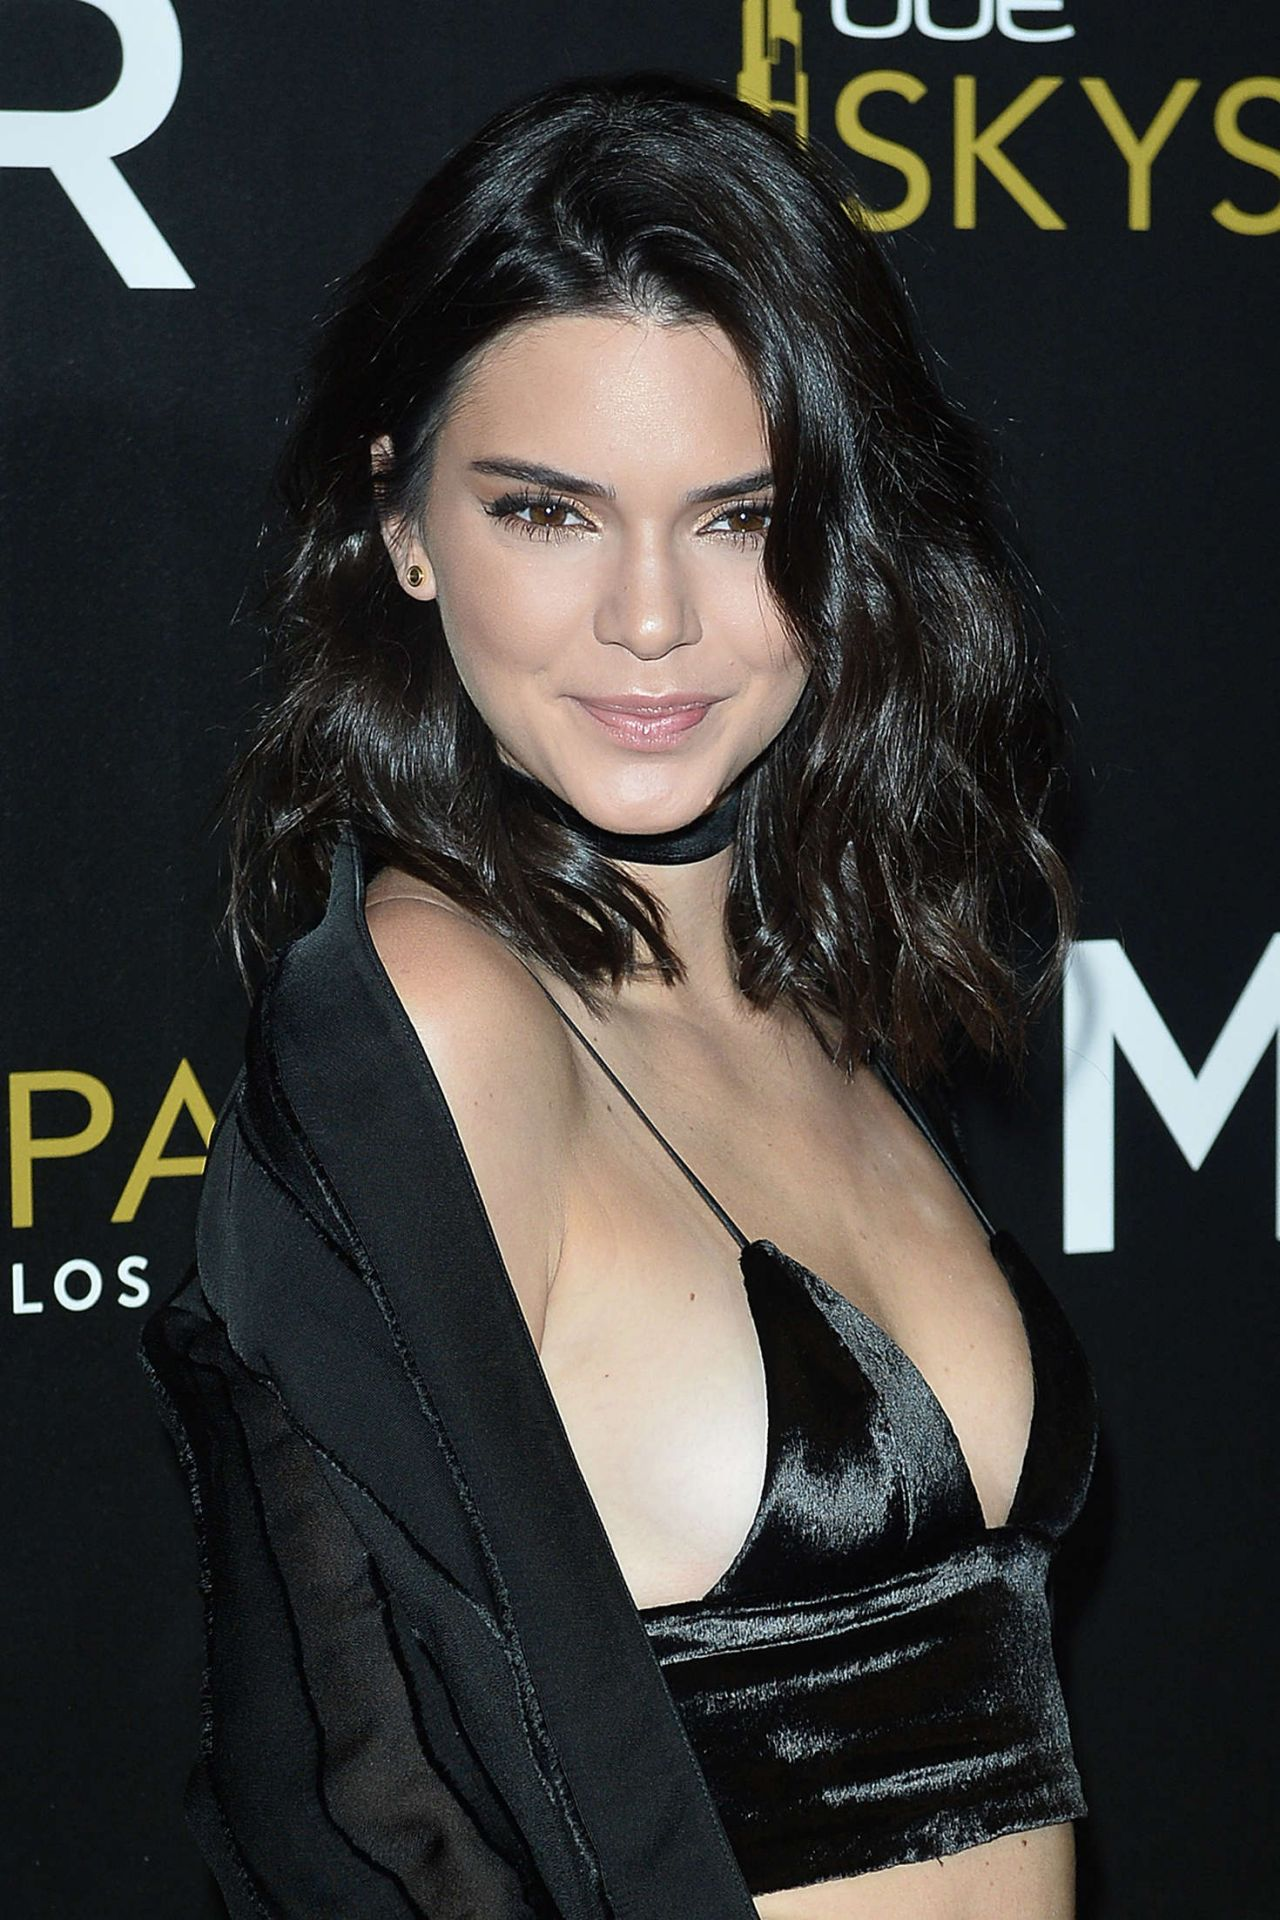 Kendall Jenner Caviar Kaspia Dinner After Pharmacy Stop: Launch Of OUE Skyspace In Los Angeles, CA